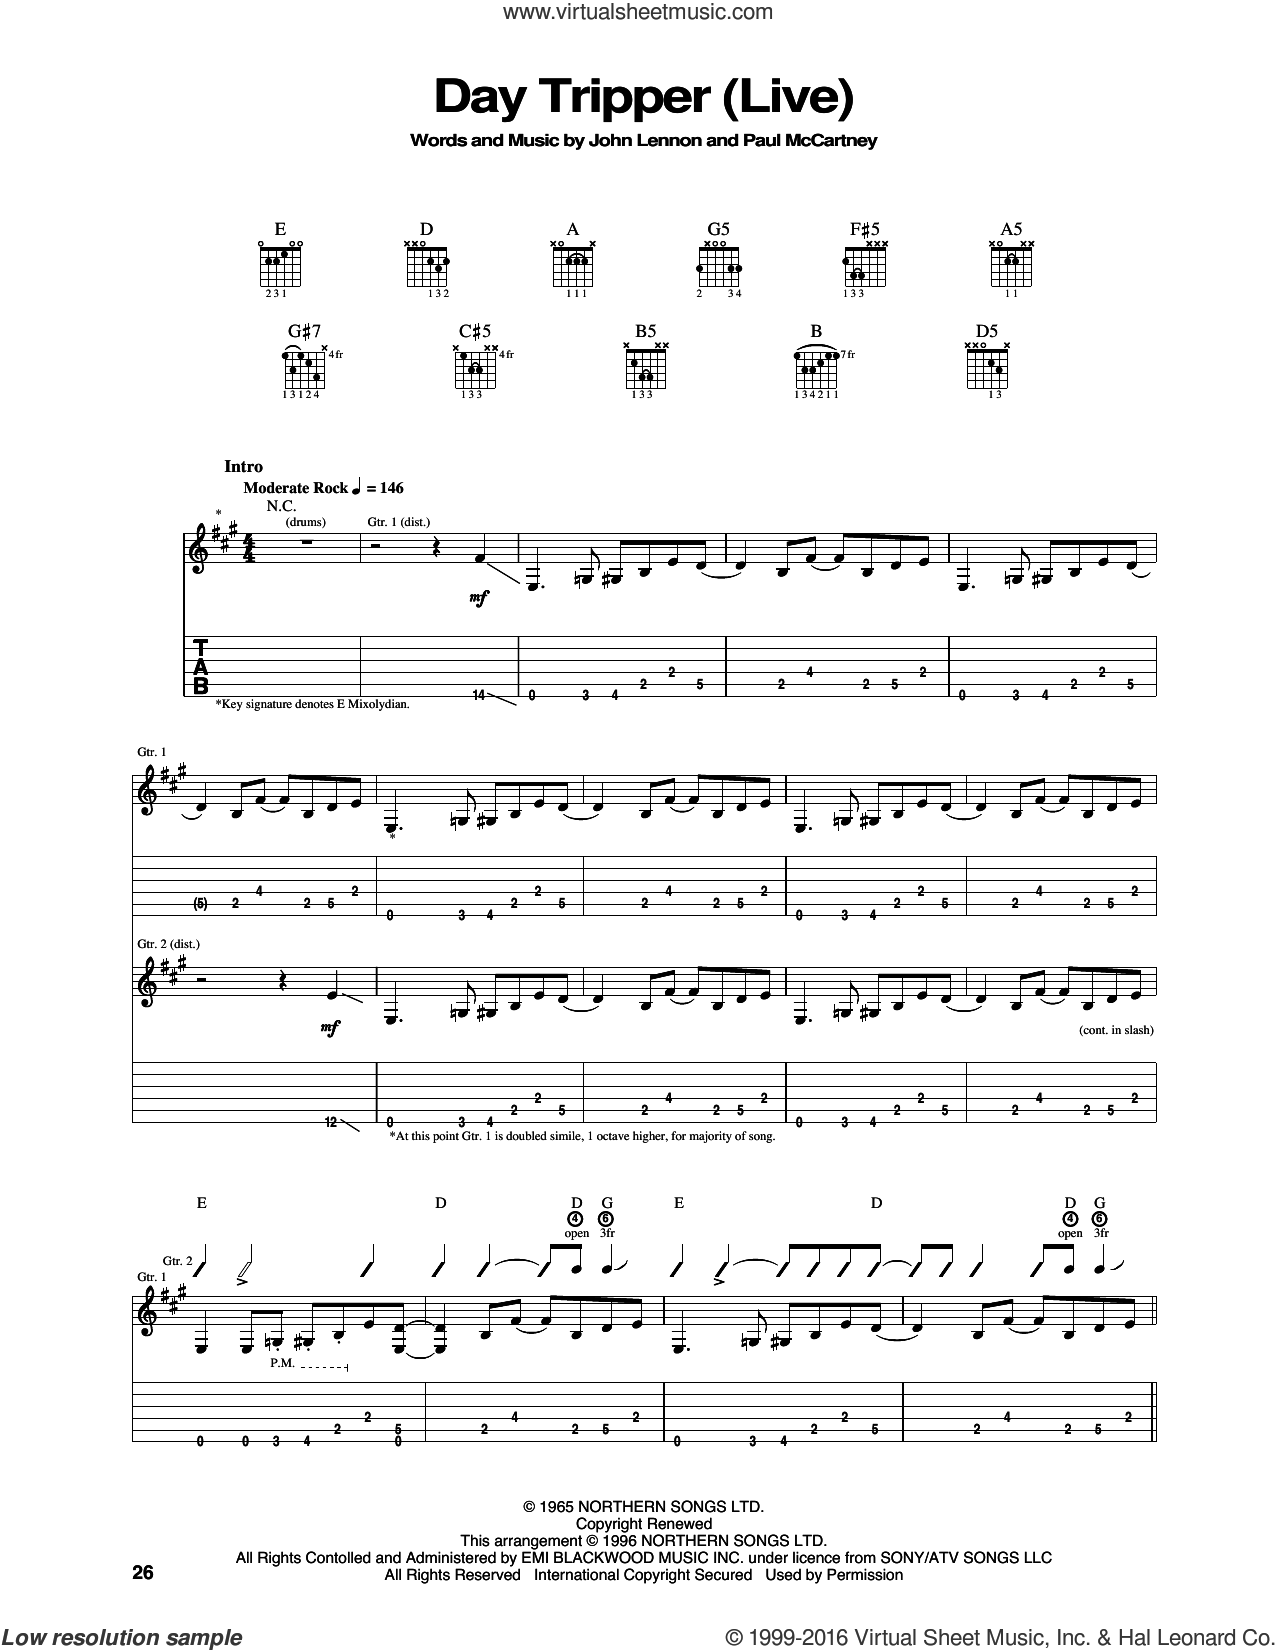 Day Tripper sheet music for guitar (tablature) by Jimi Hendrix, The Beatles, John Lennon and Paul McCartney, intermediate